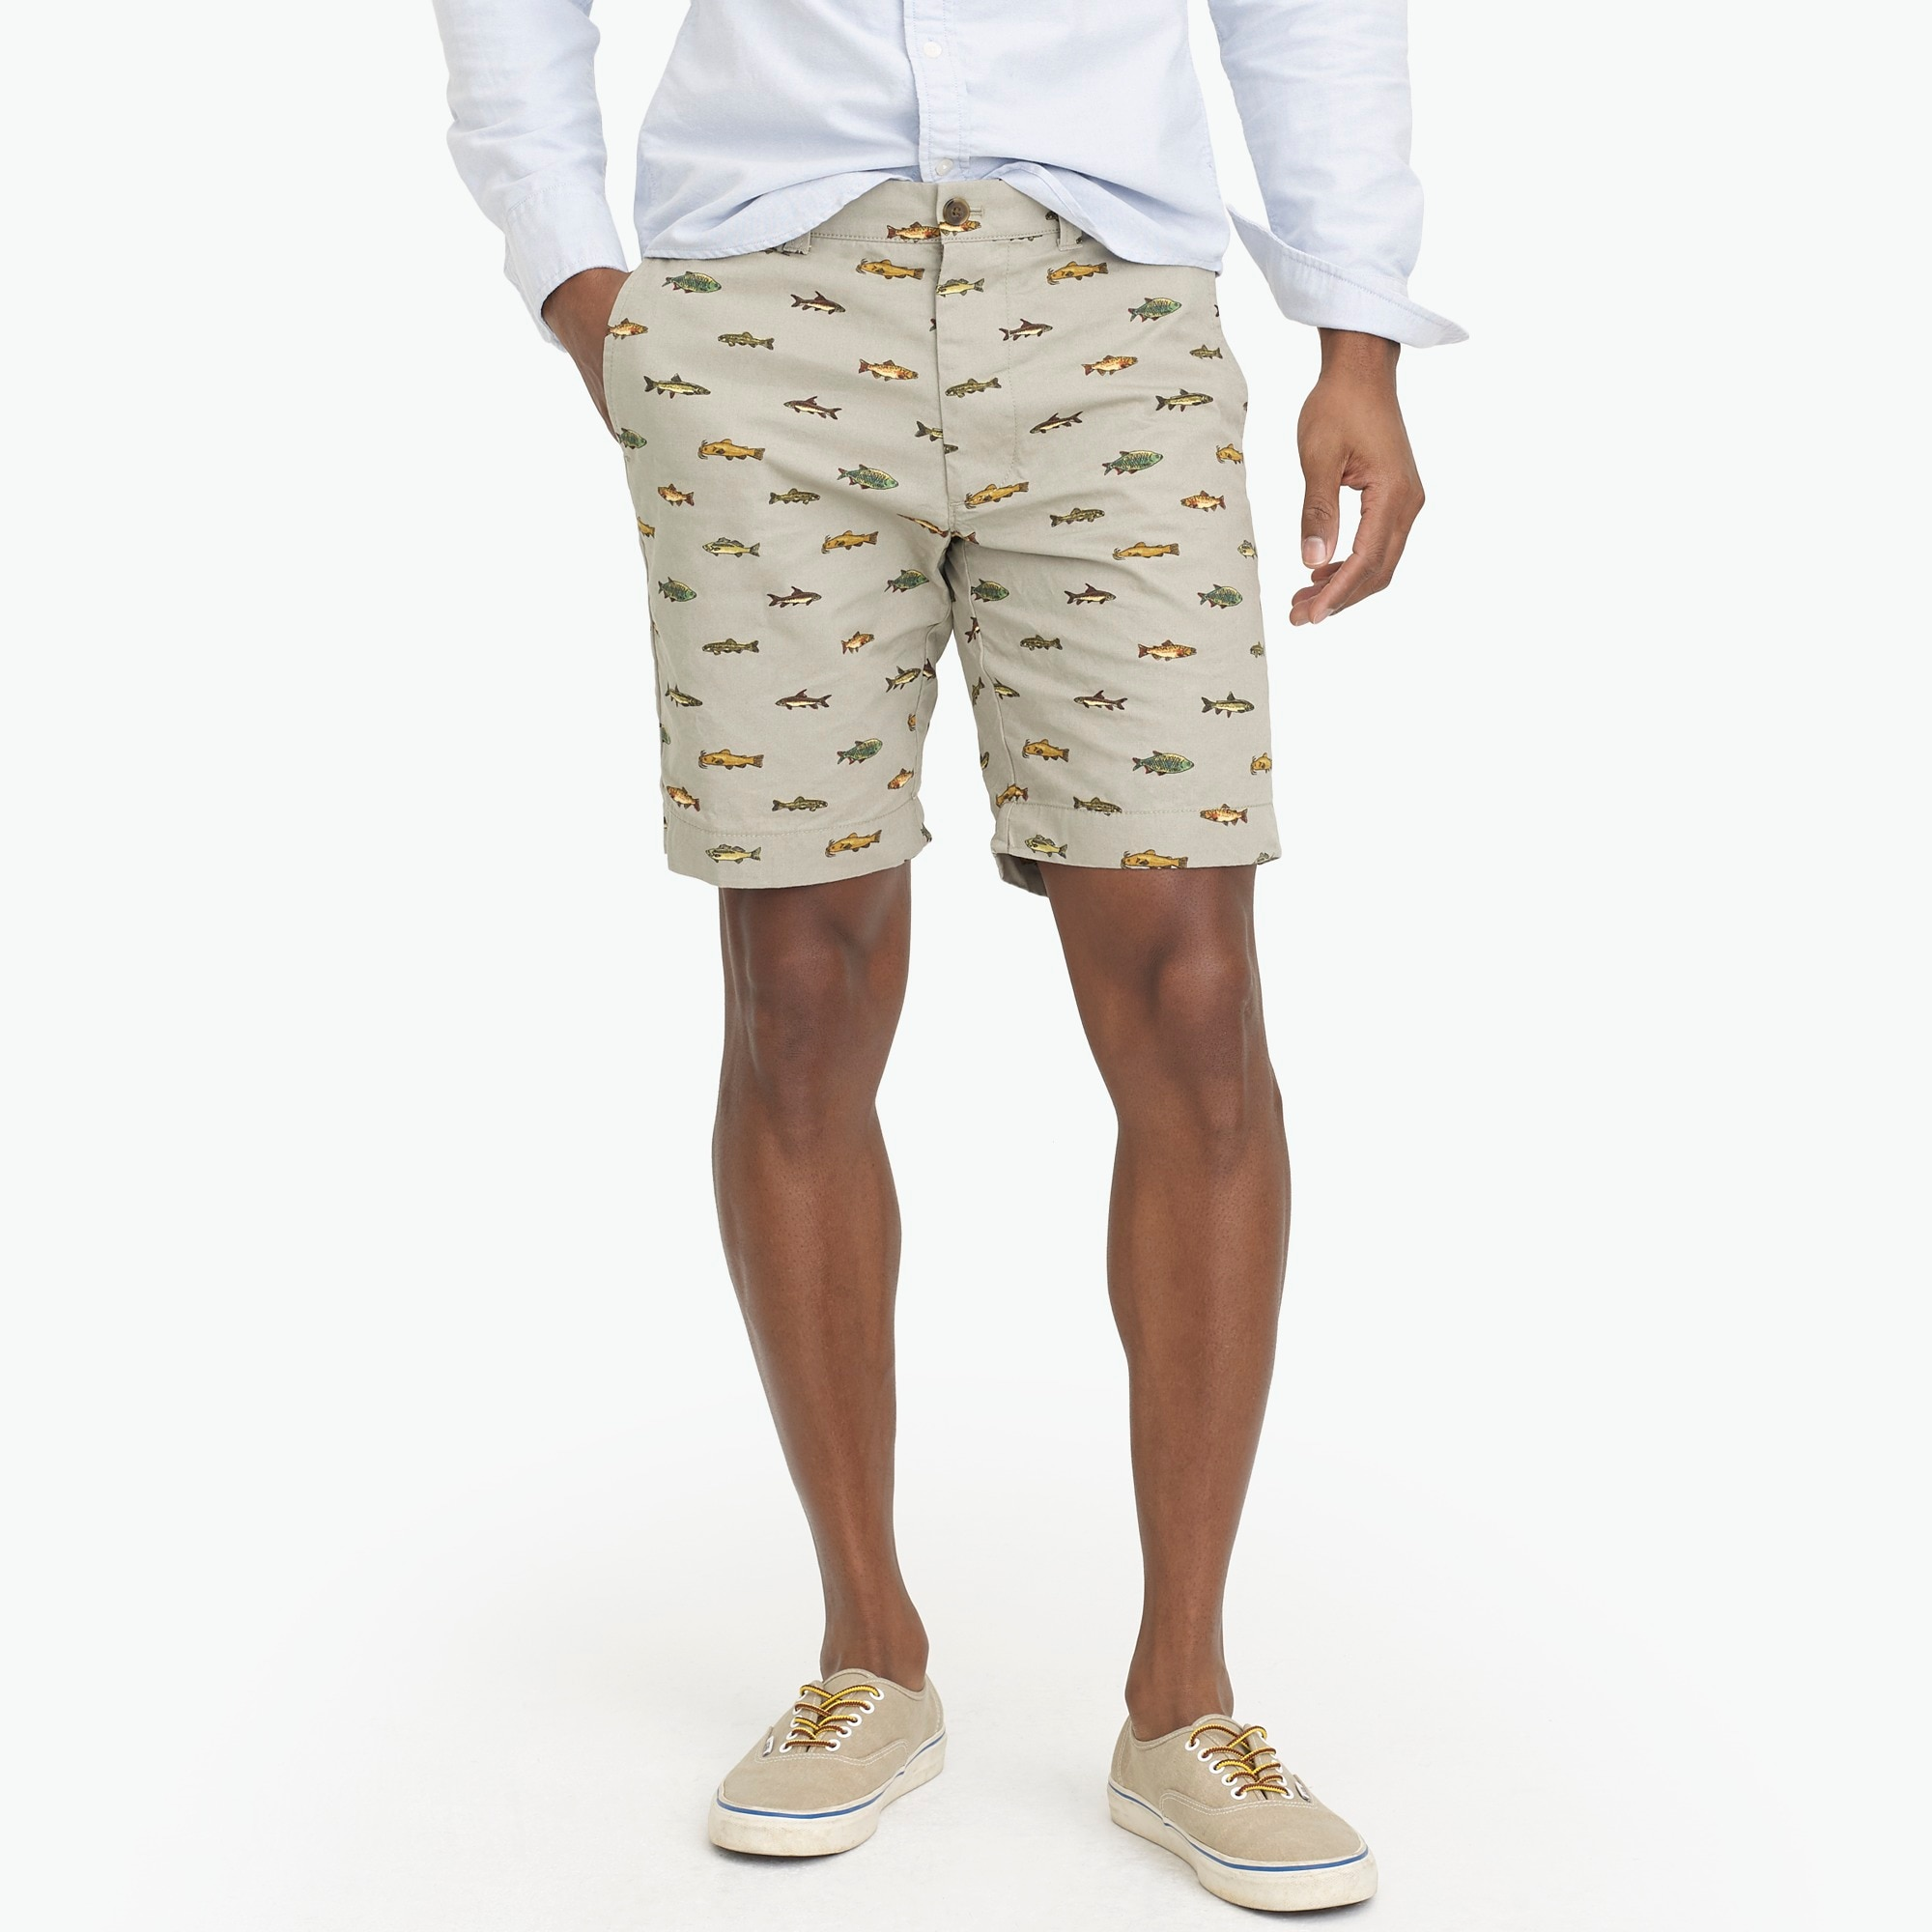 "9"" gramercy printed lightweight chino short : factorymen 9"""